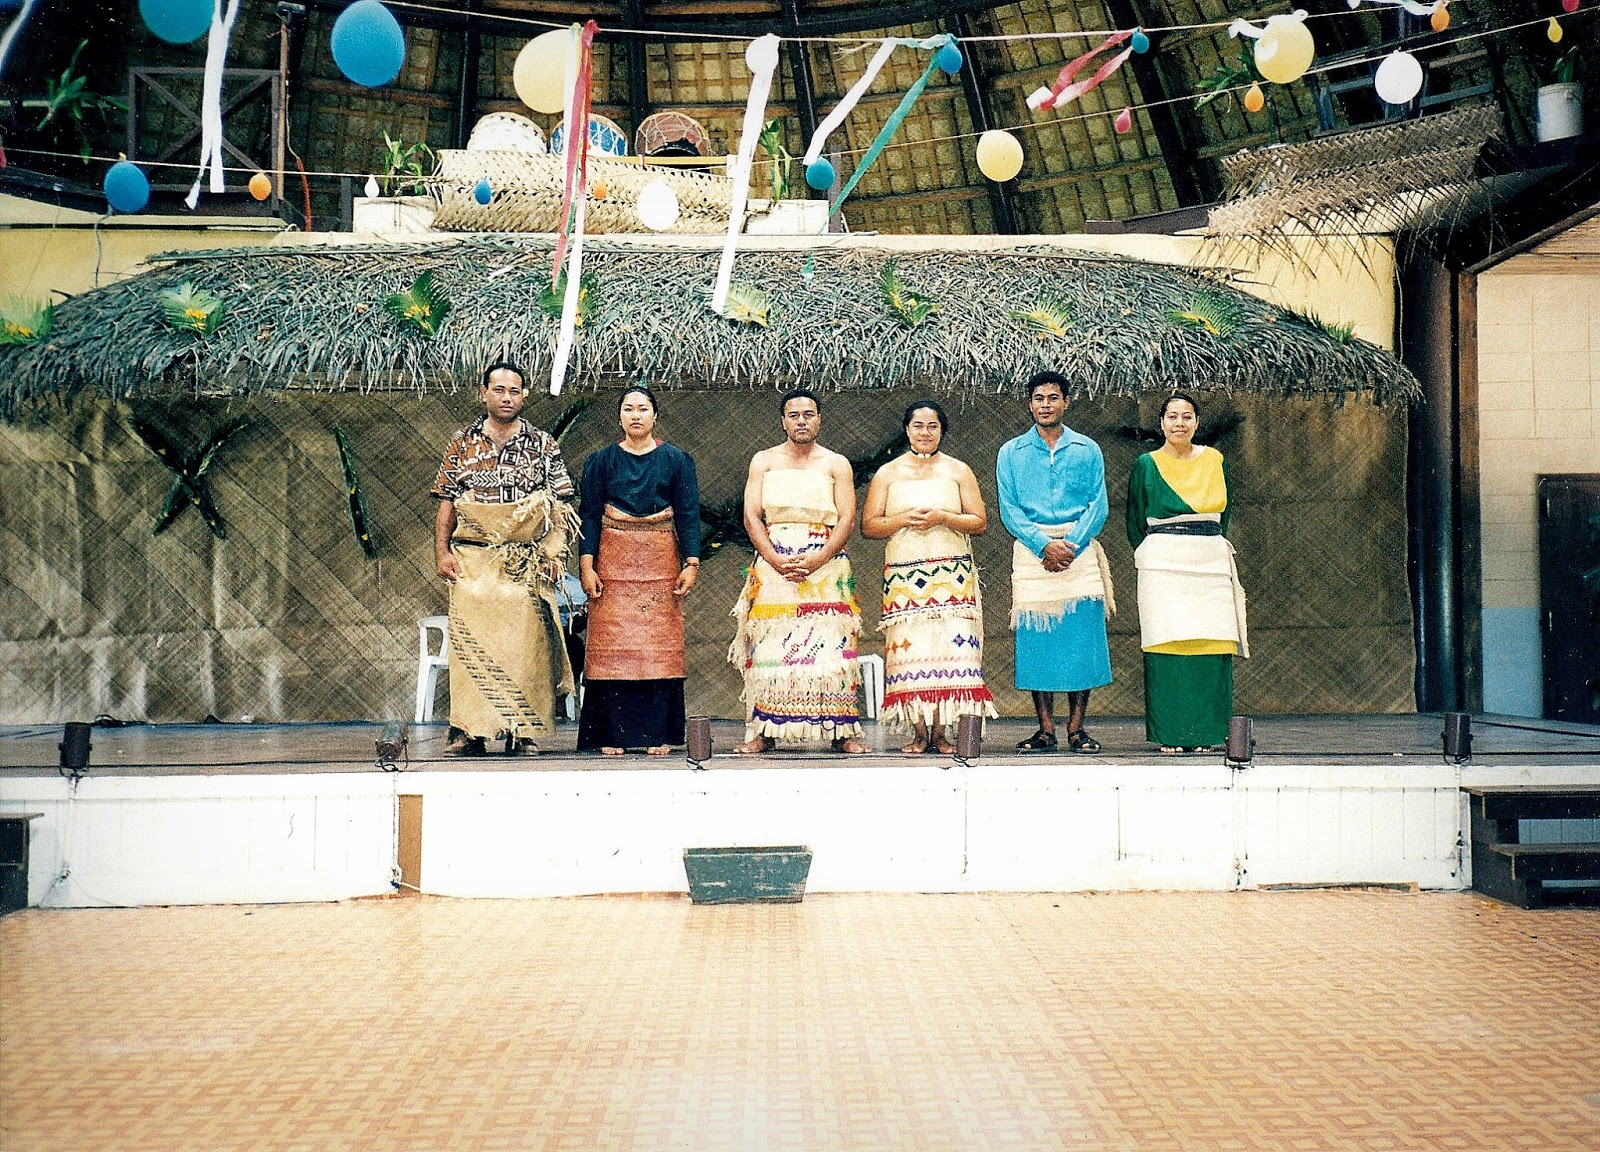 At this Tongan feast, there was also a fashion show!